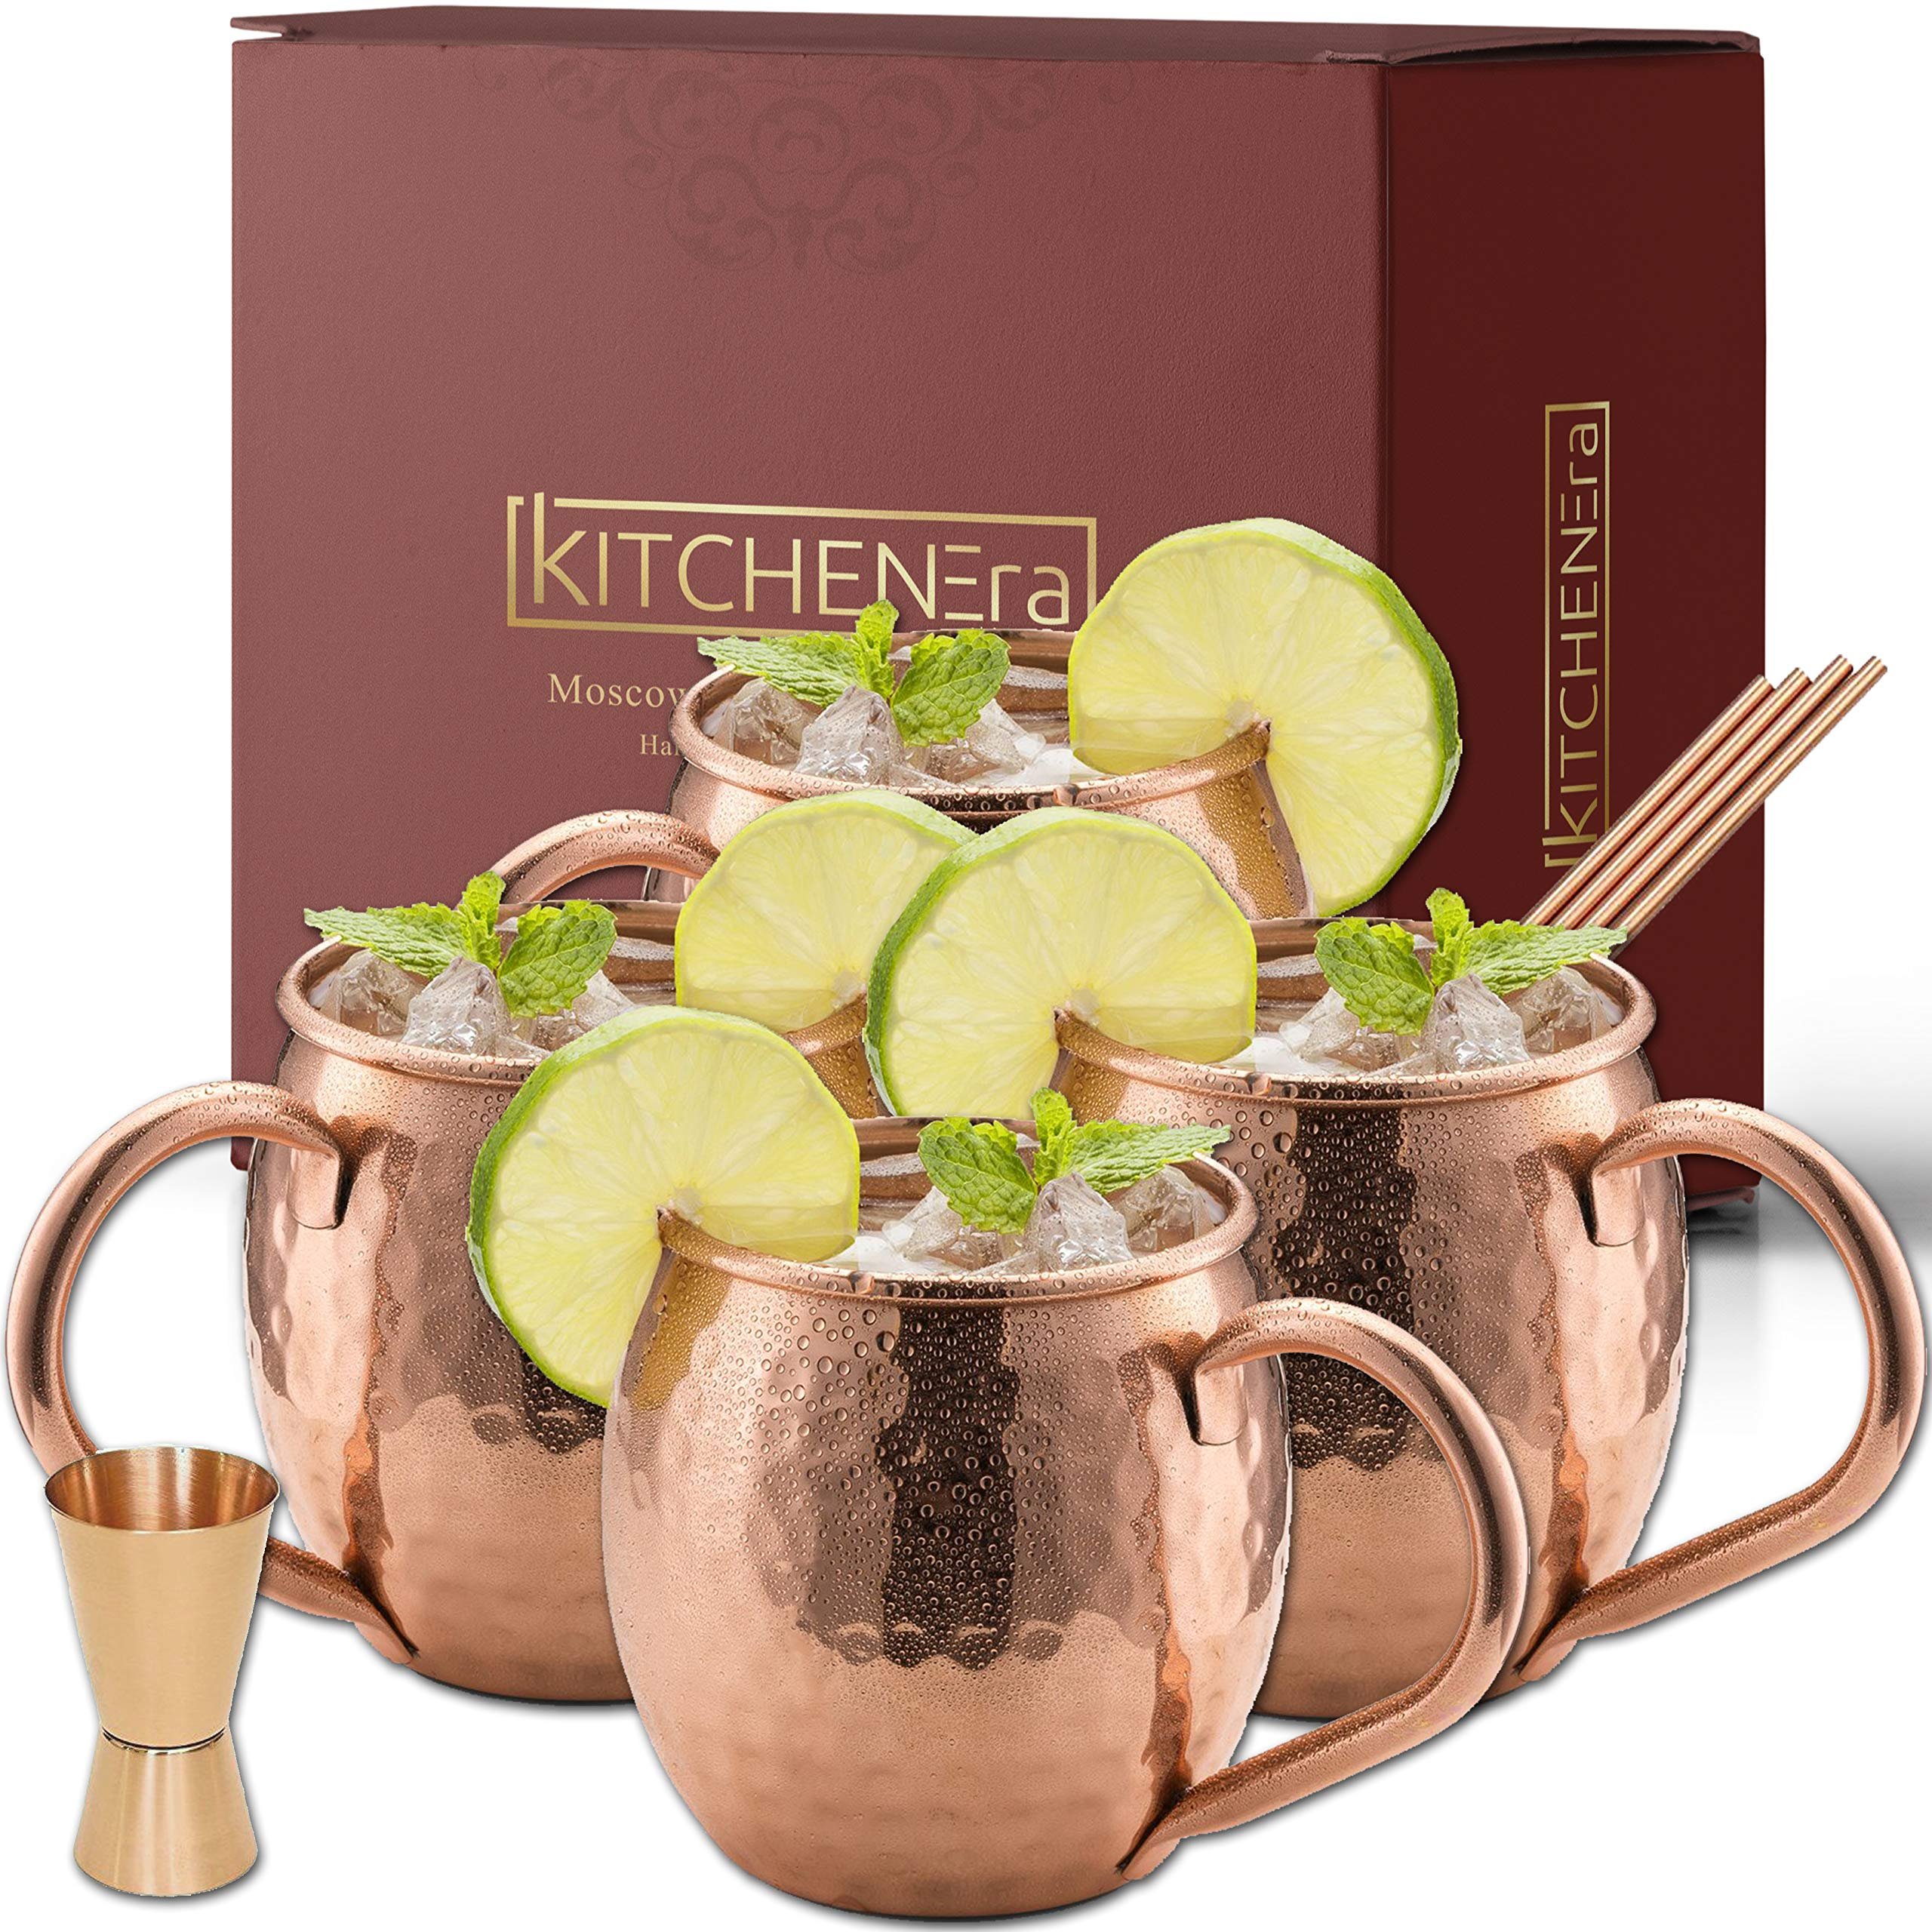 Moscow Mule Copper Mugs - 100% Copper HandCrafted Hammered Moscow Mule Copper Mugs Set of 4 - FREE Jigger - FREE Copper Straws